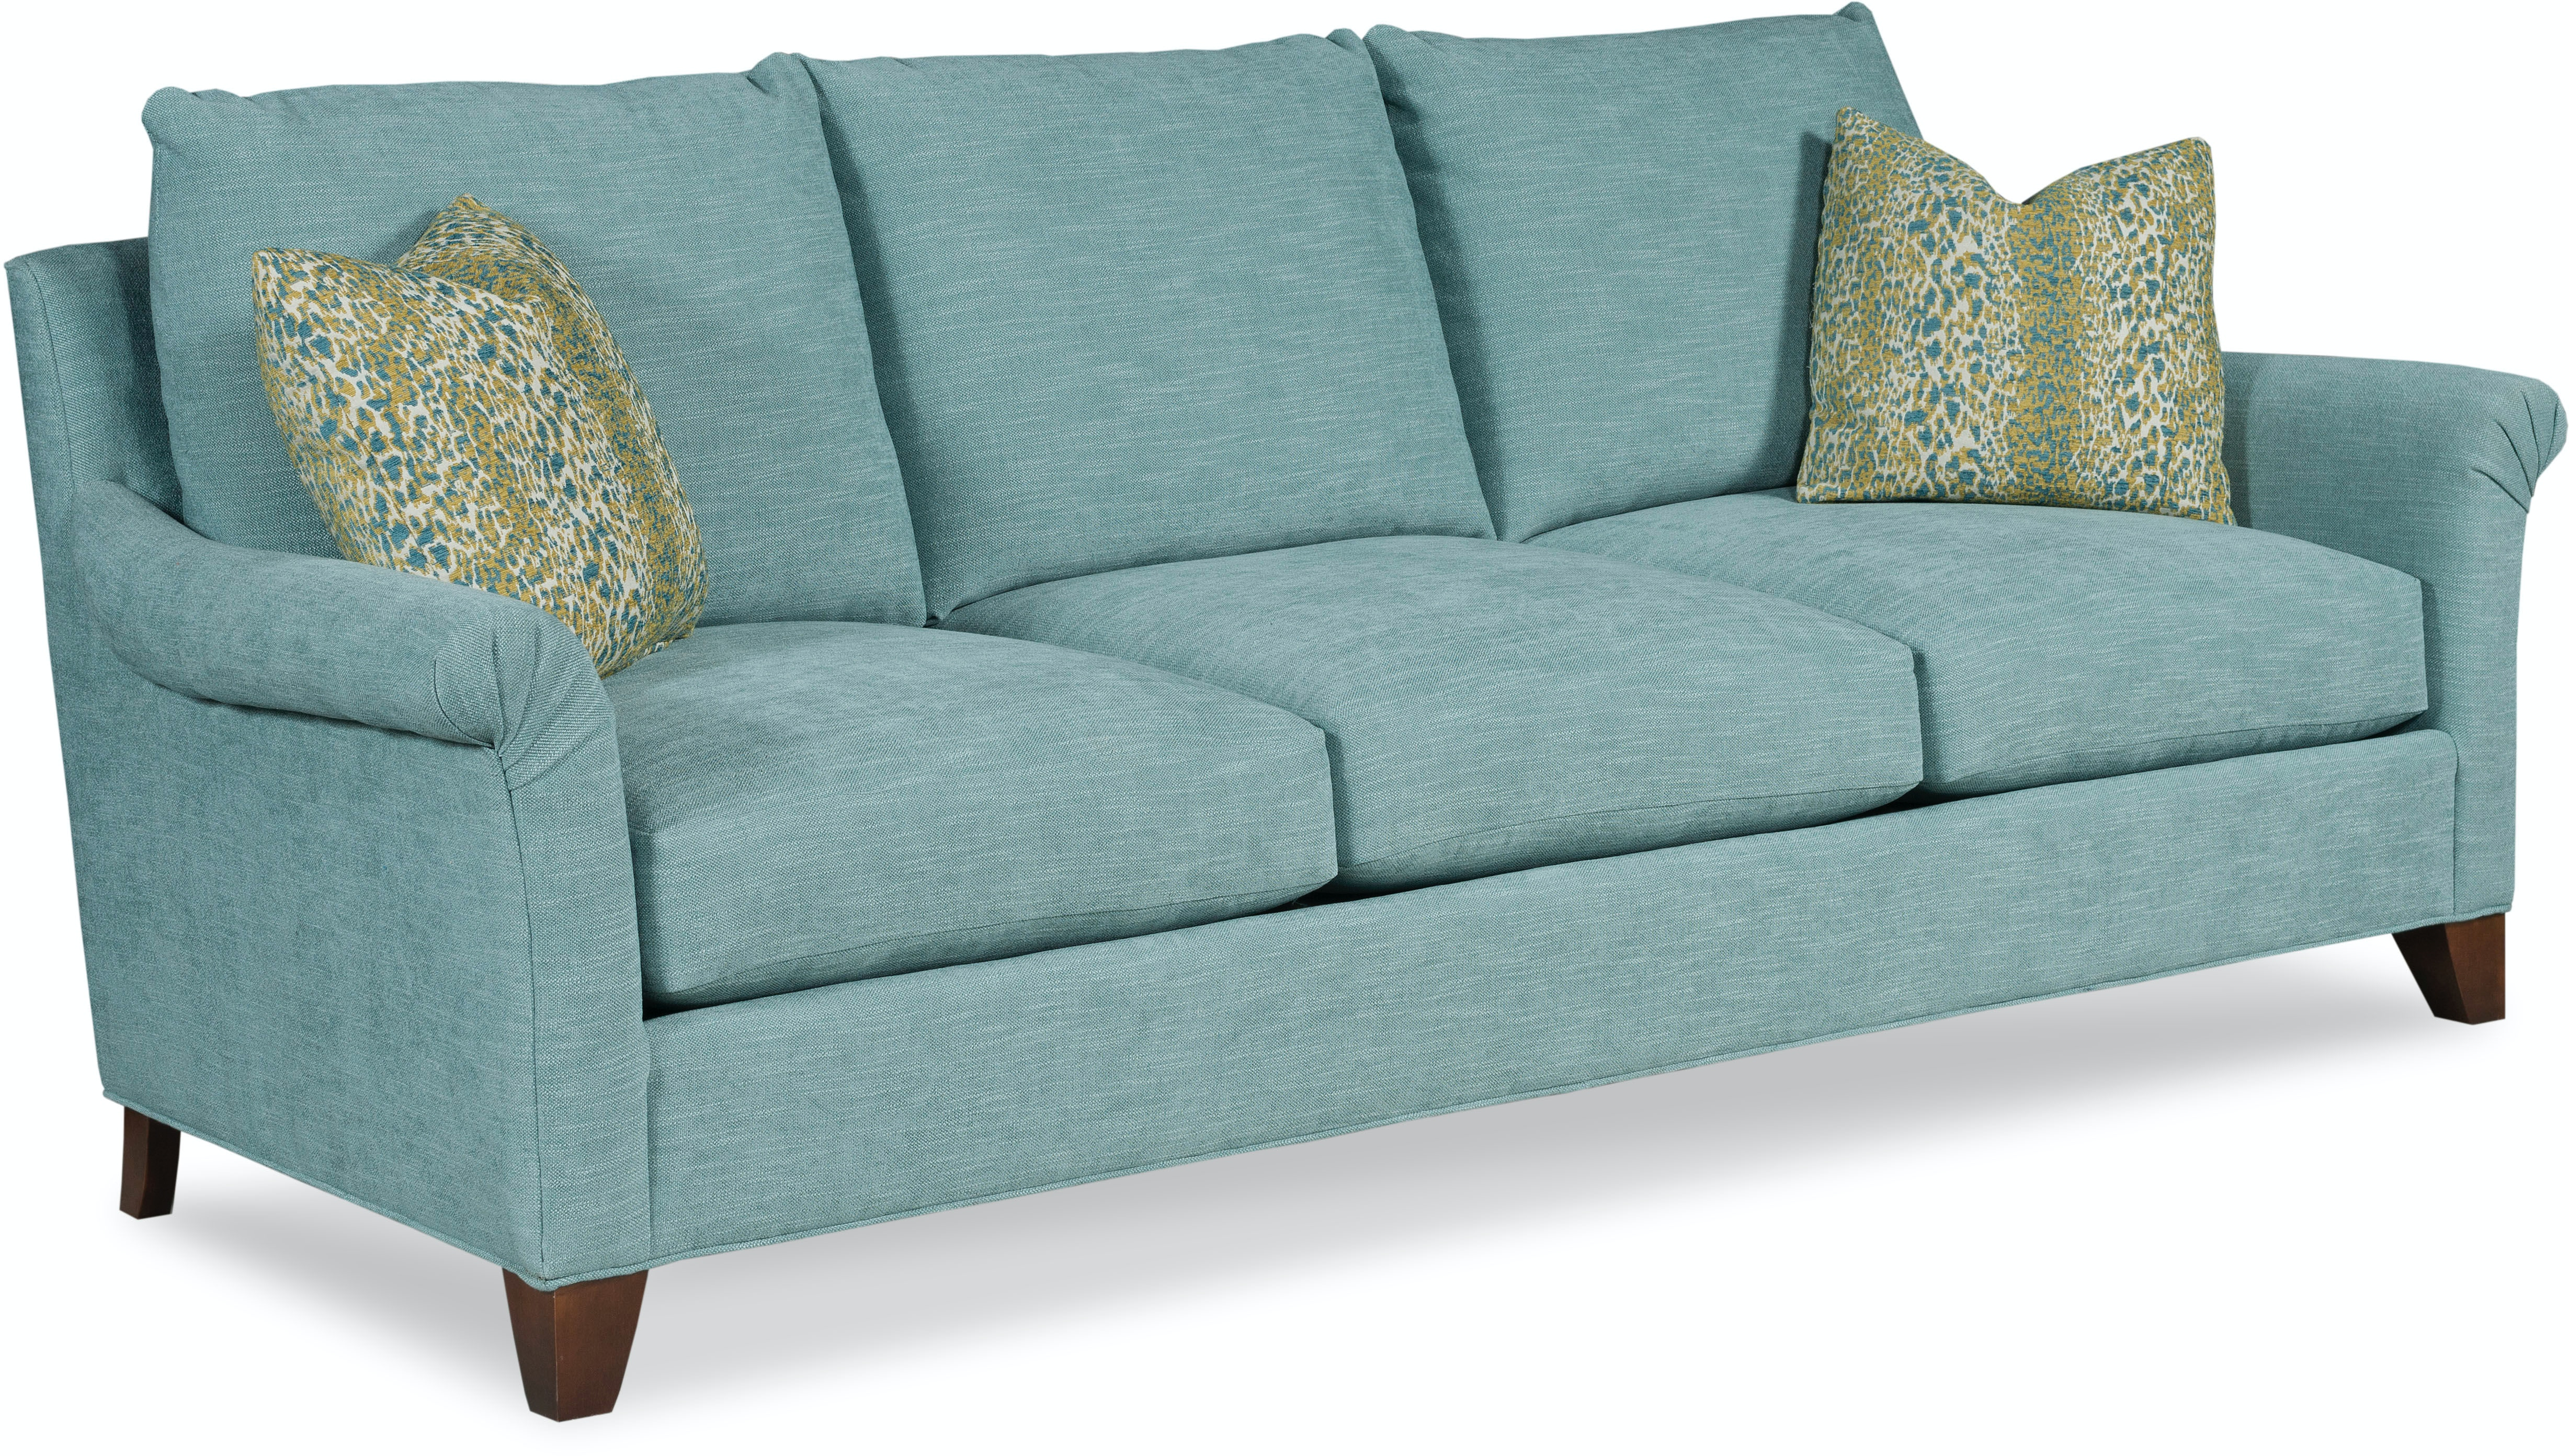 Fairfield Chair Company Living Room Olivia Sofa 2722 50  : 2722 50 from www.dnoblinfurniture.com size 1024 x 768 jpeg 60kB